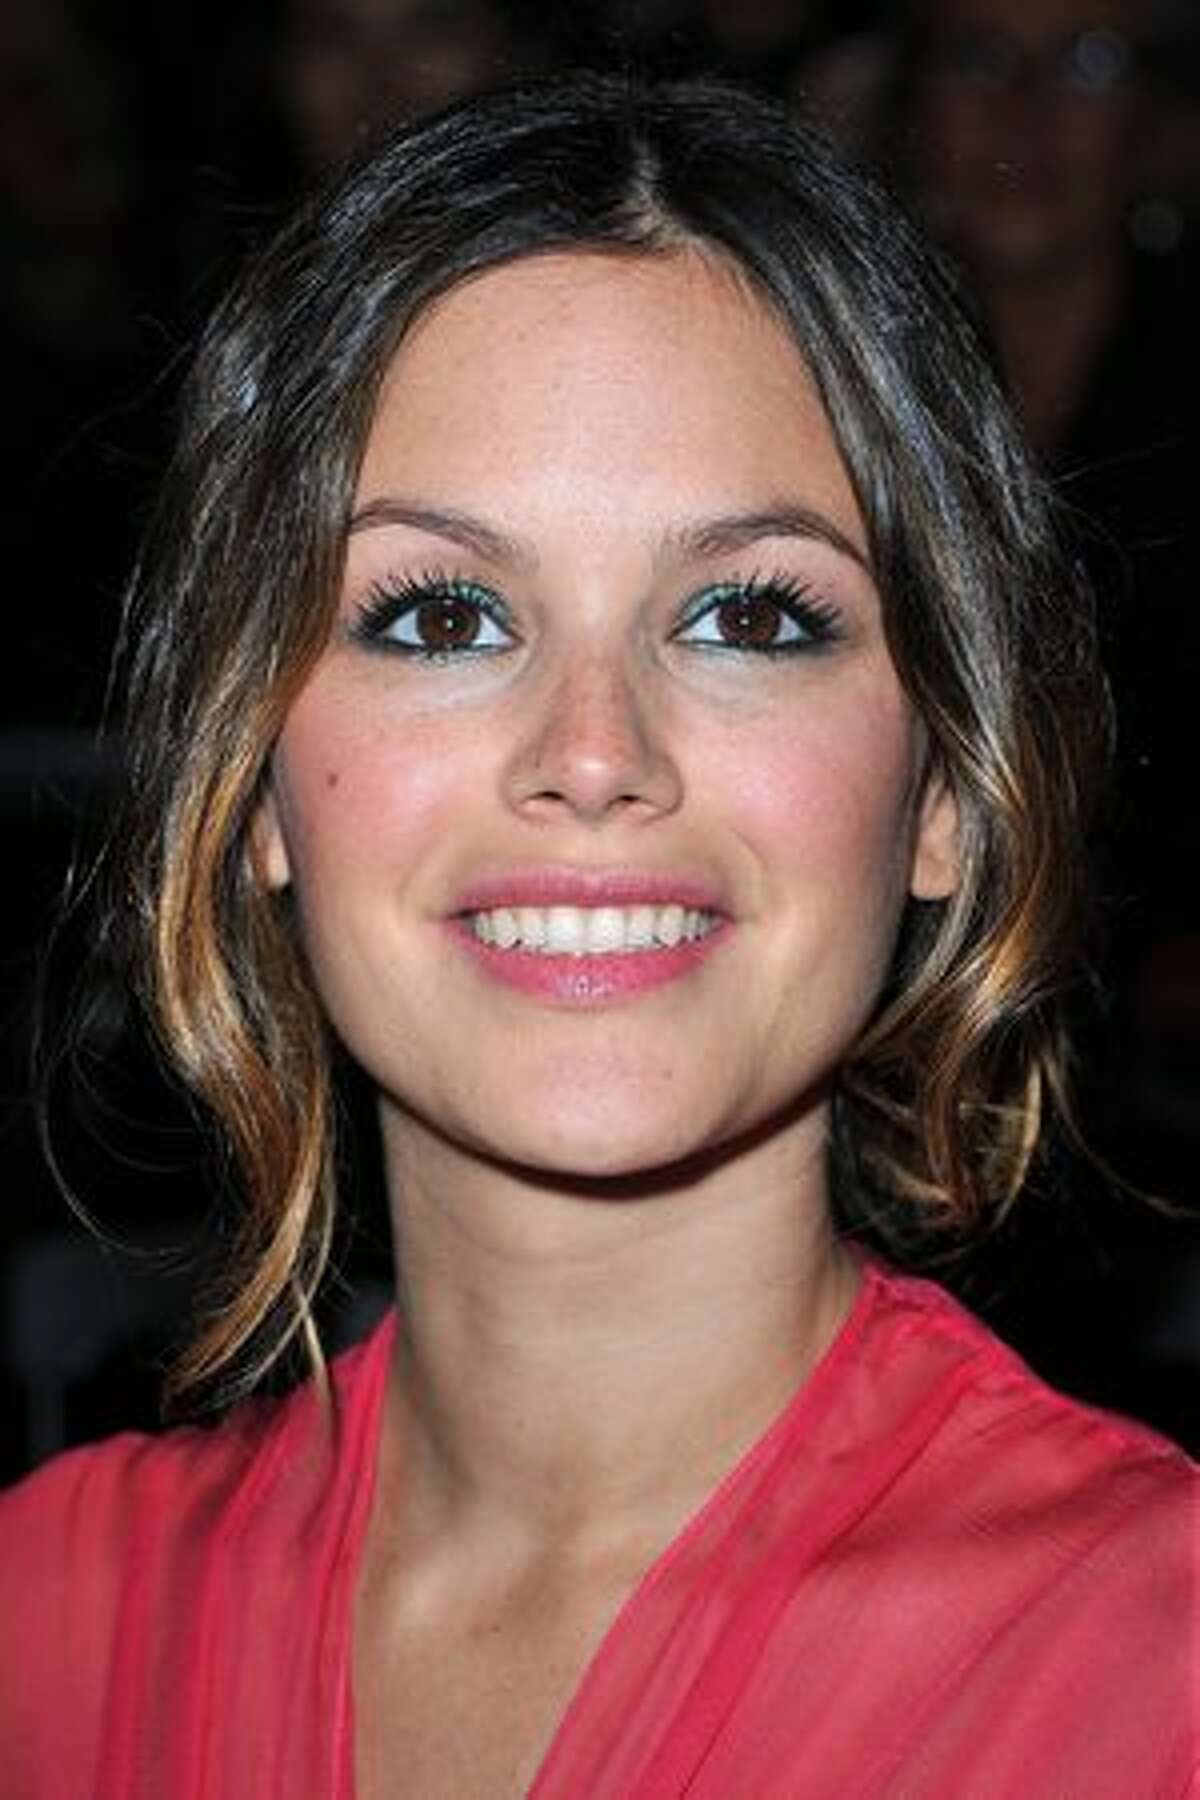 Rachel Bilson attends the Christian Dior Ready to Wear Spring/Summer 2011 show during Paris Fashion Week in Paris, France.